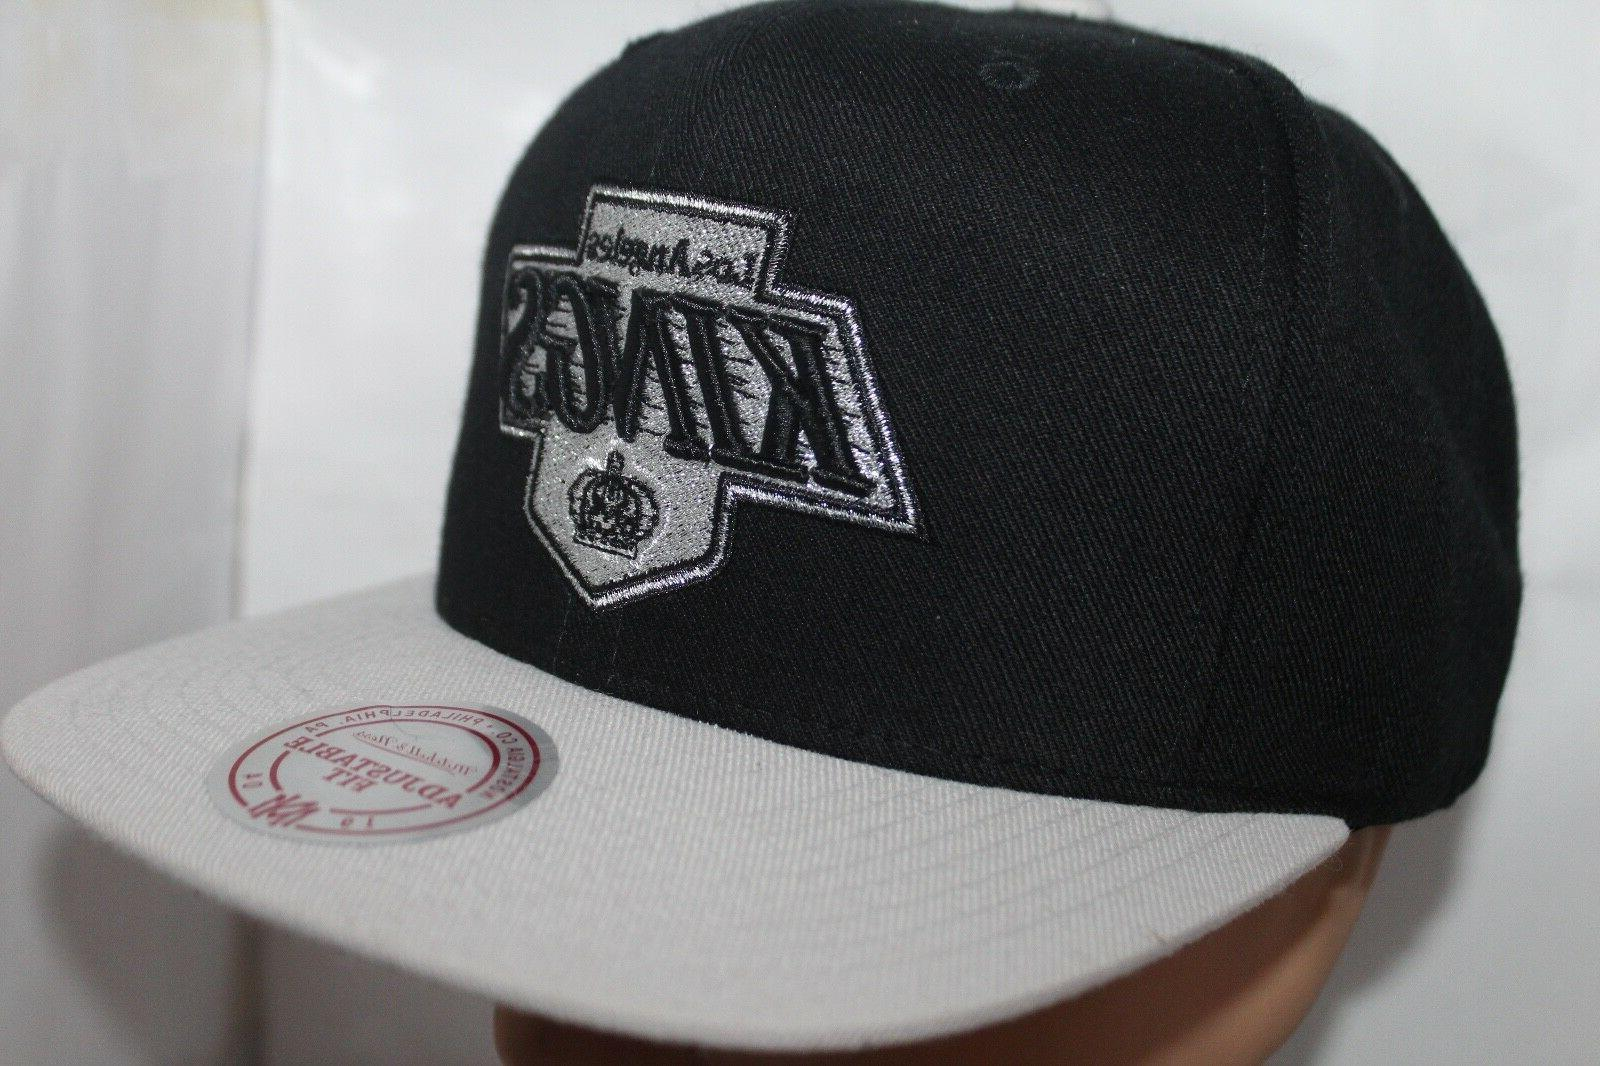 los angeles kings mitchell and ness nhl